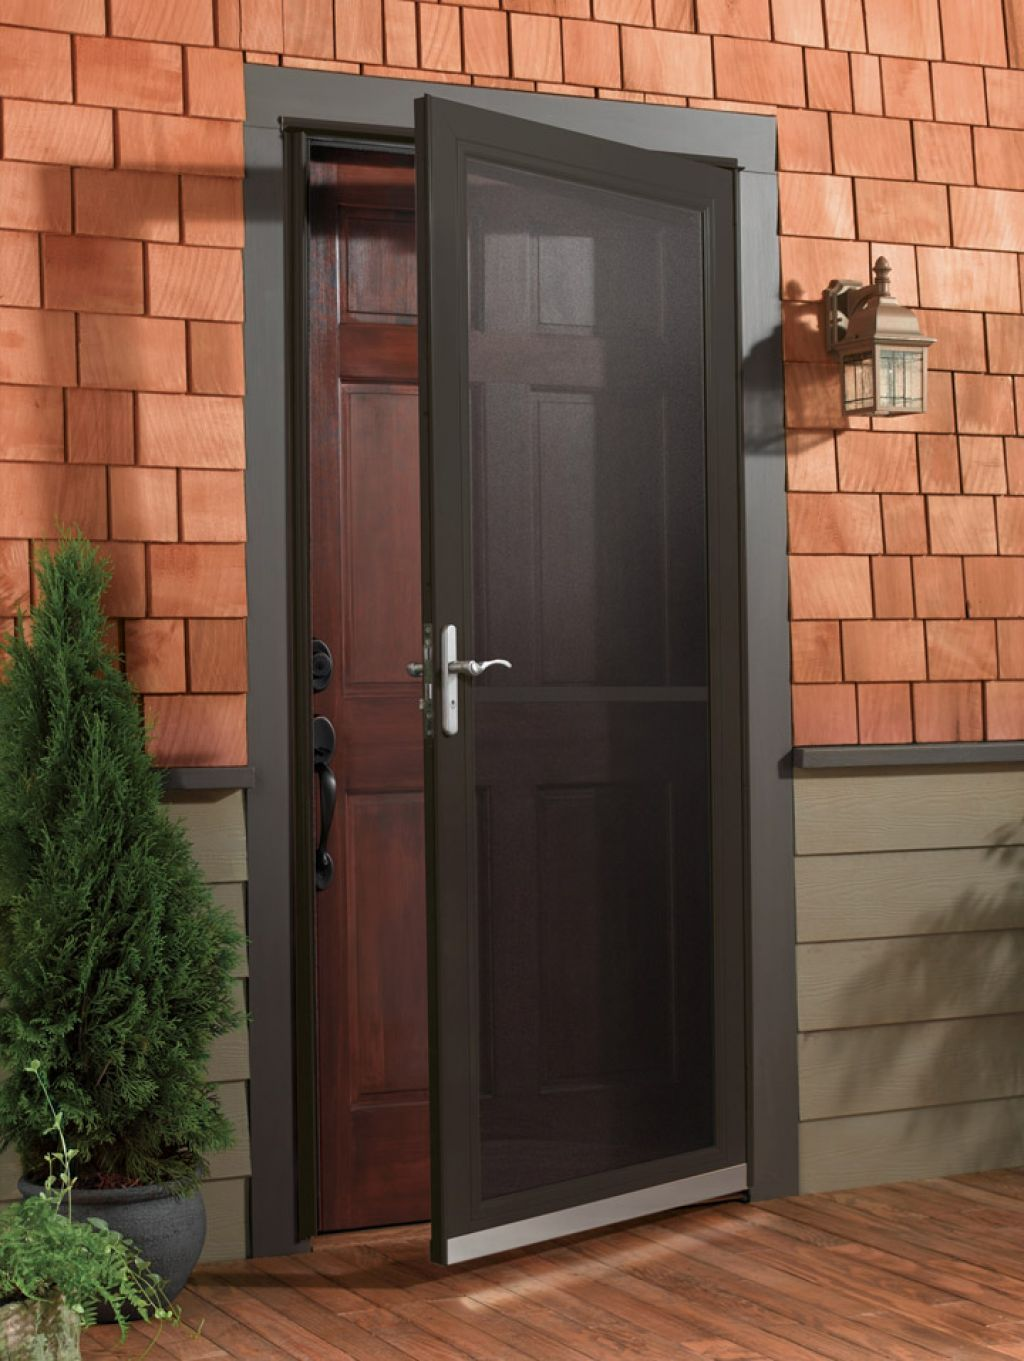 Simple Common Design For Storm Door Using Dark Shaded